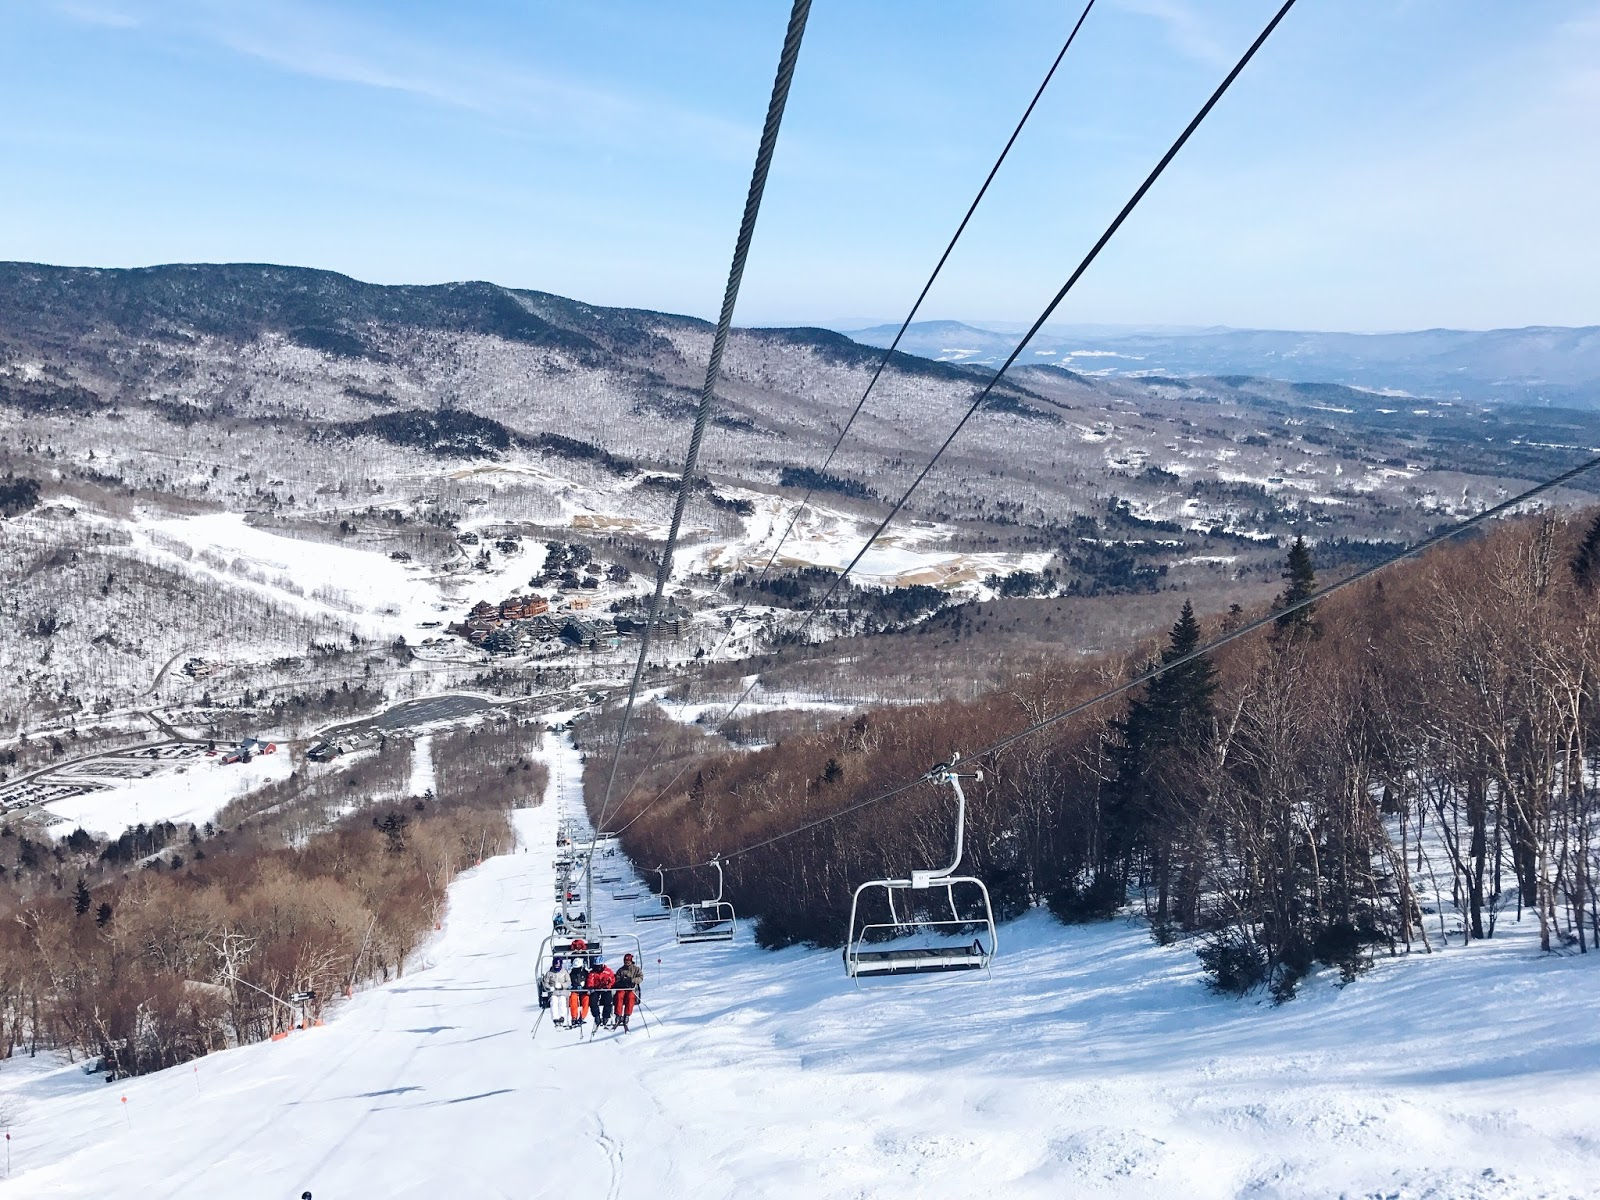 a guide to skiing in stowe, vermont | whiskers & lions